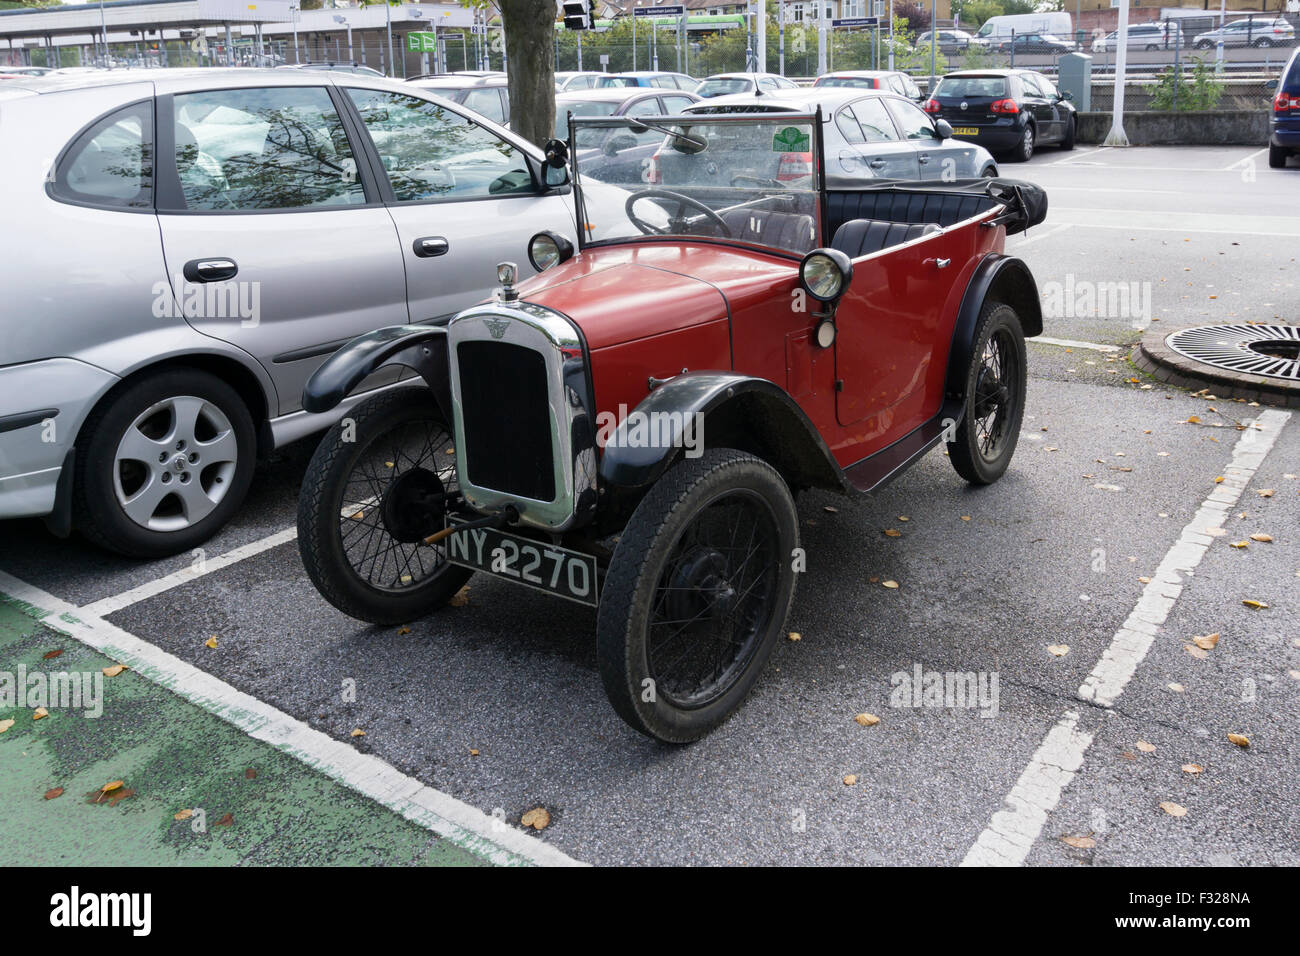 Baby Austin Vintage Car Stock Photos & Baby Austin Vintage Car Stock ...